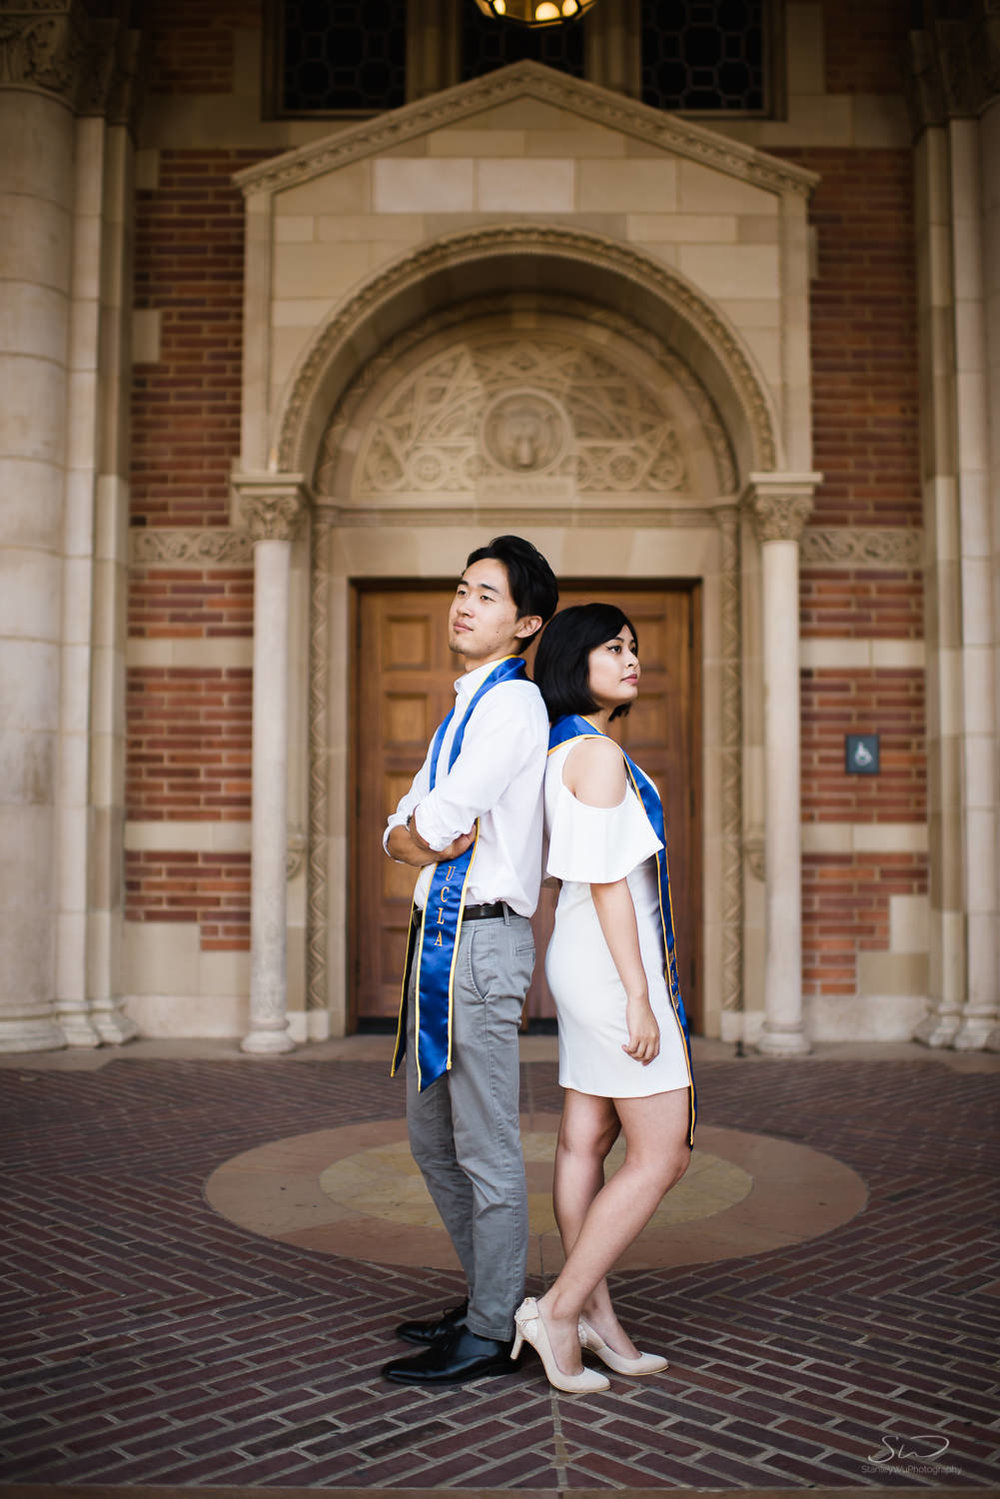 Copy of Copy of couple posing under arches in royce hall  | Stanley Wu Photography | Los Angeles | Graduation Portraits | UCLA, USC, LMU, Pepperdine, CSULA, CSUN, CSULB, UCI, UCSD